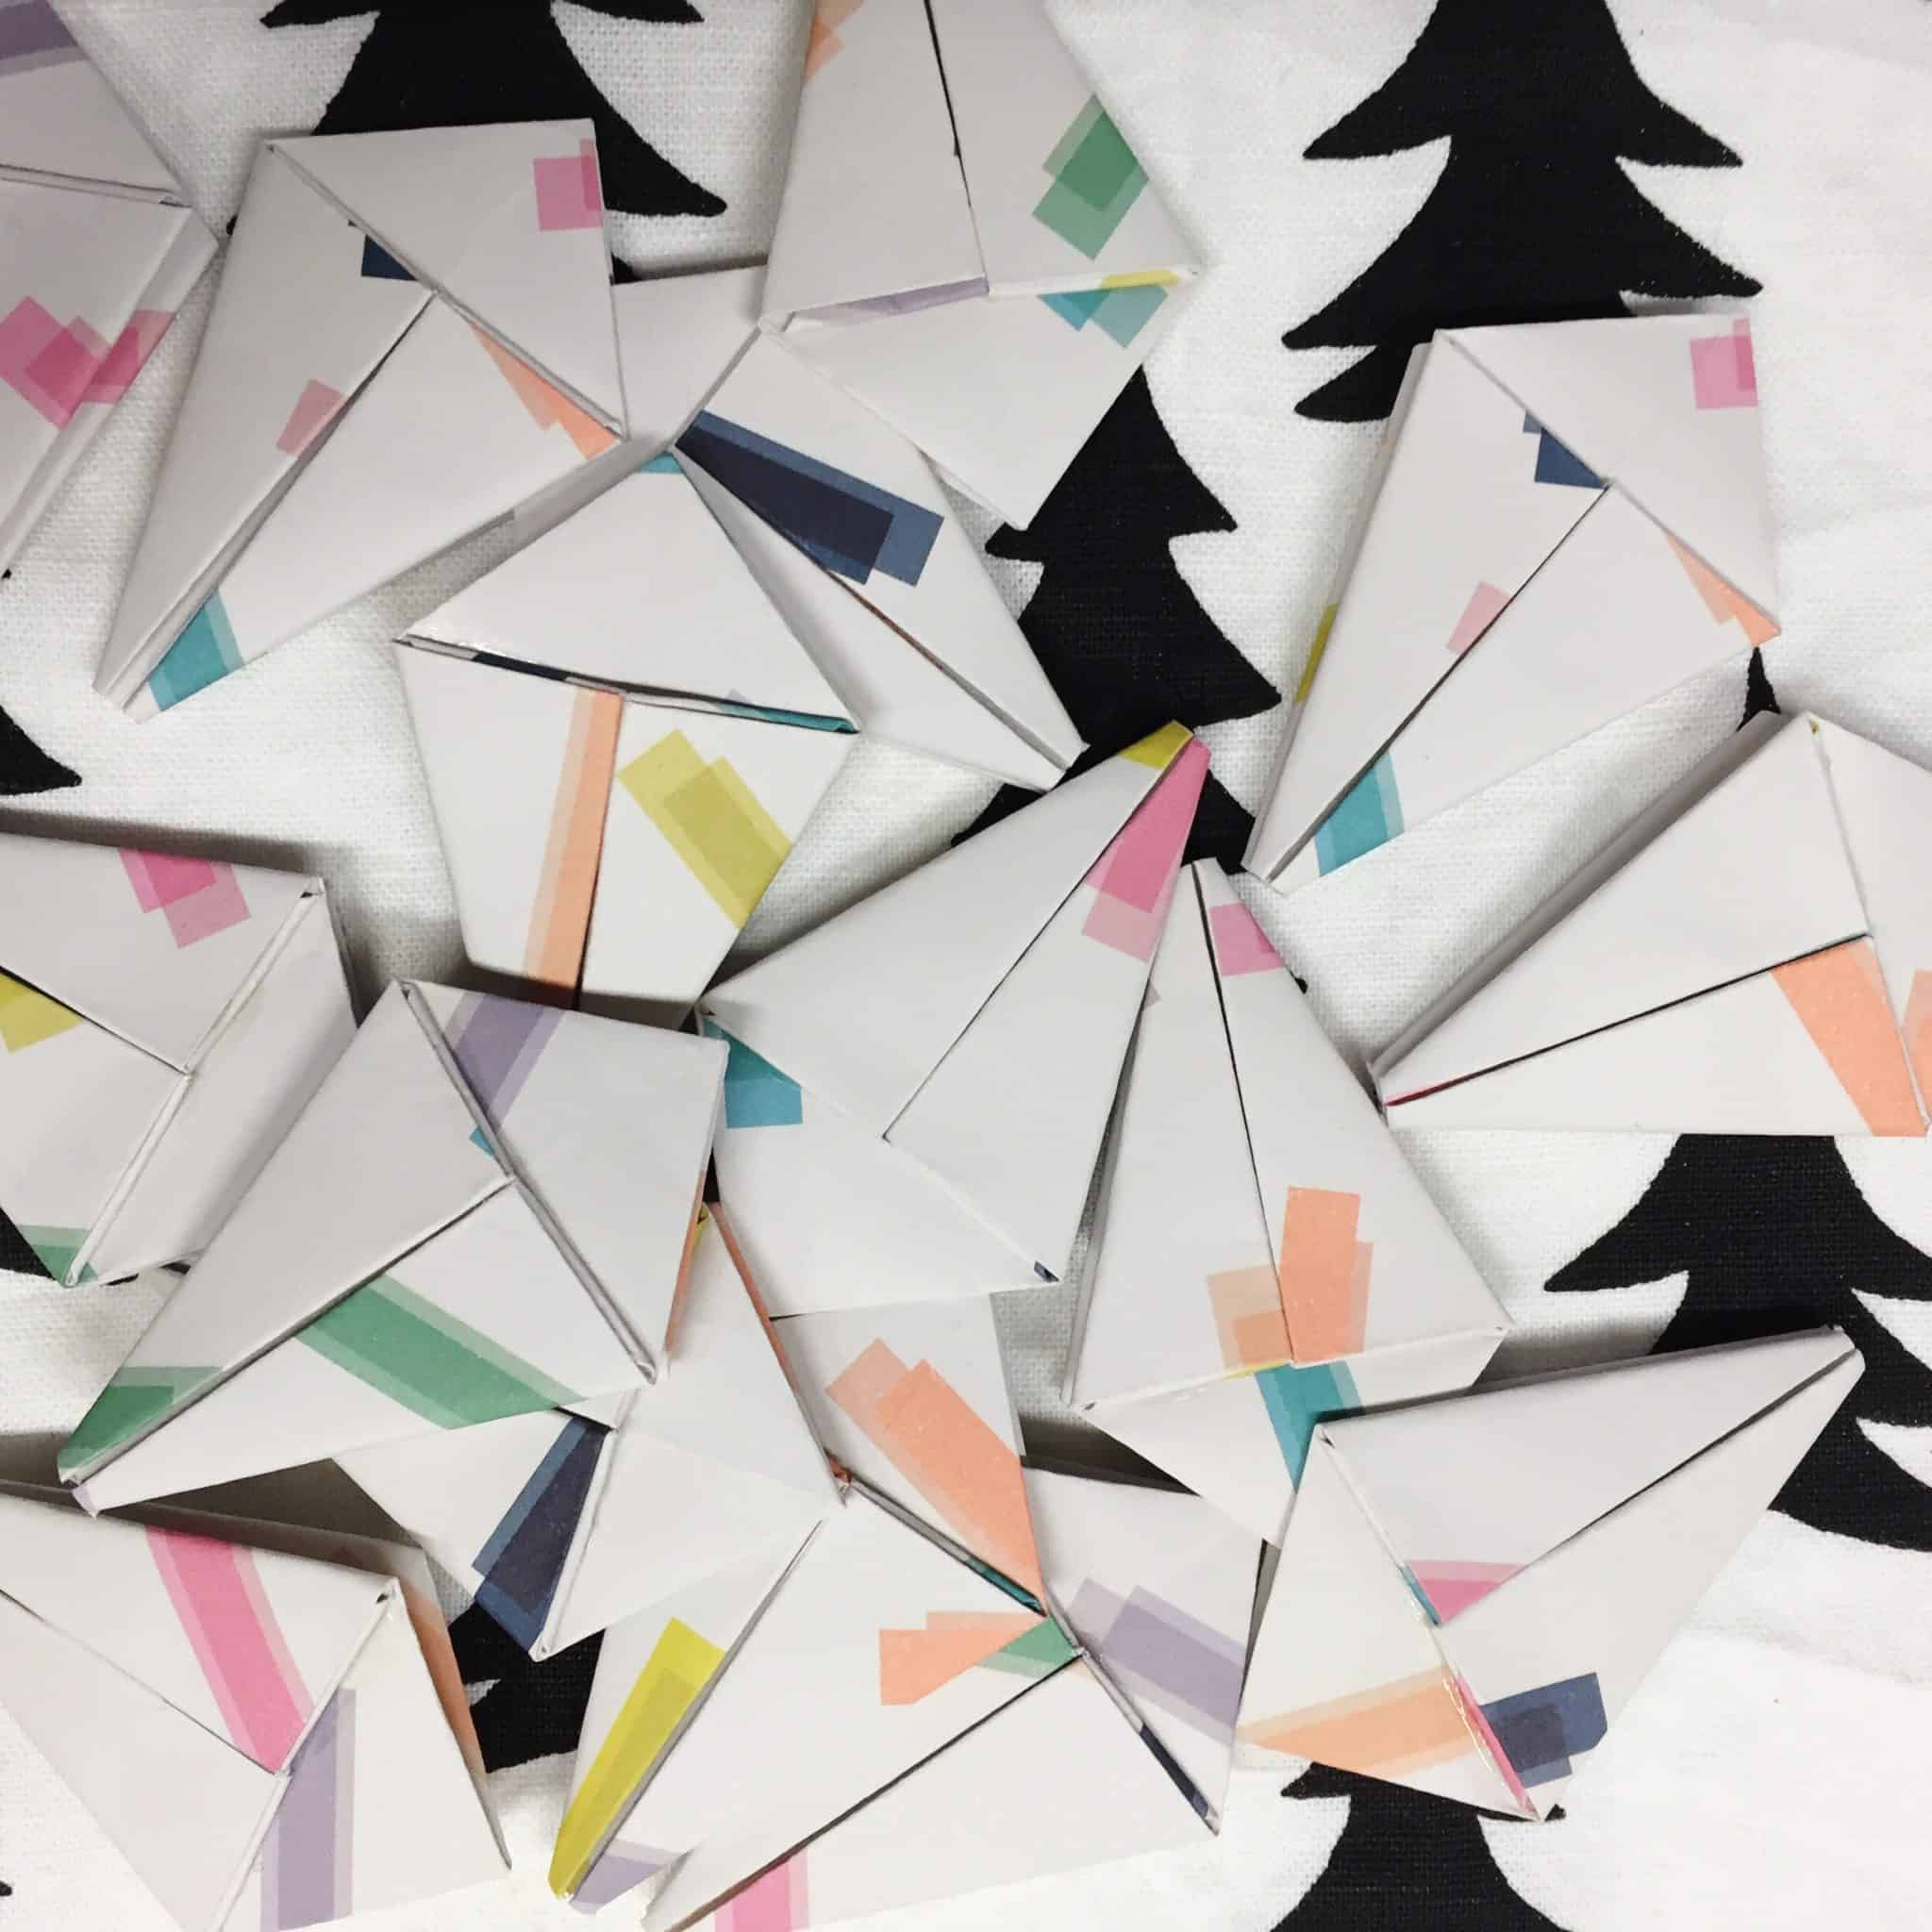 Origami shapes ready to inflate